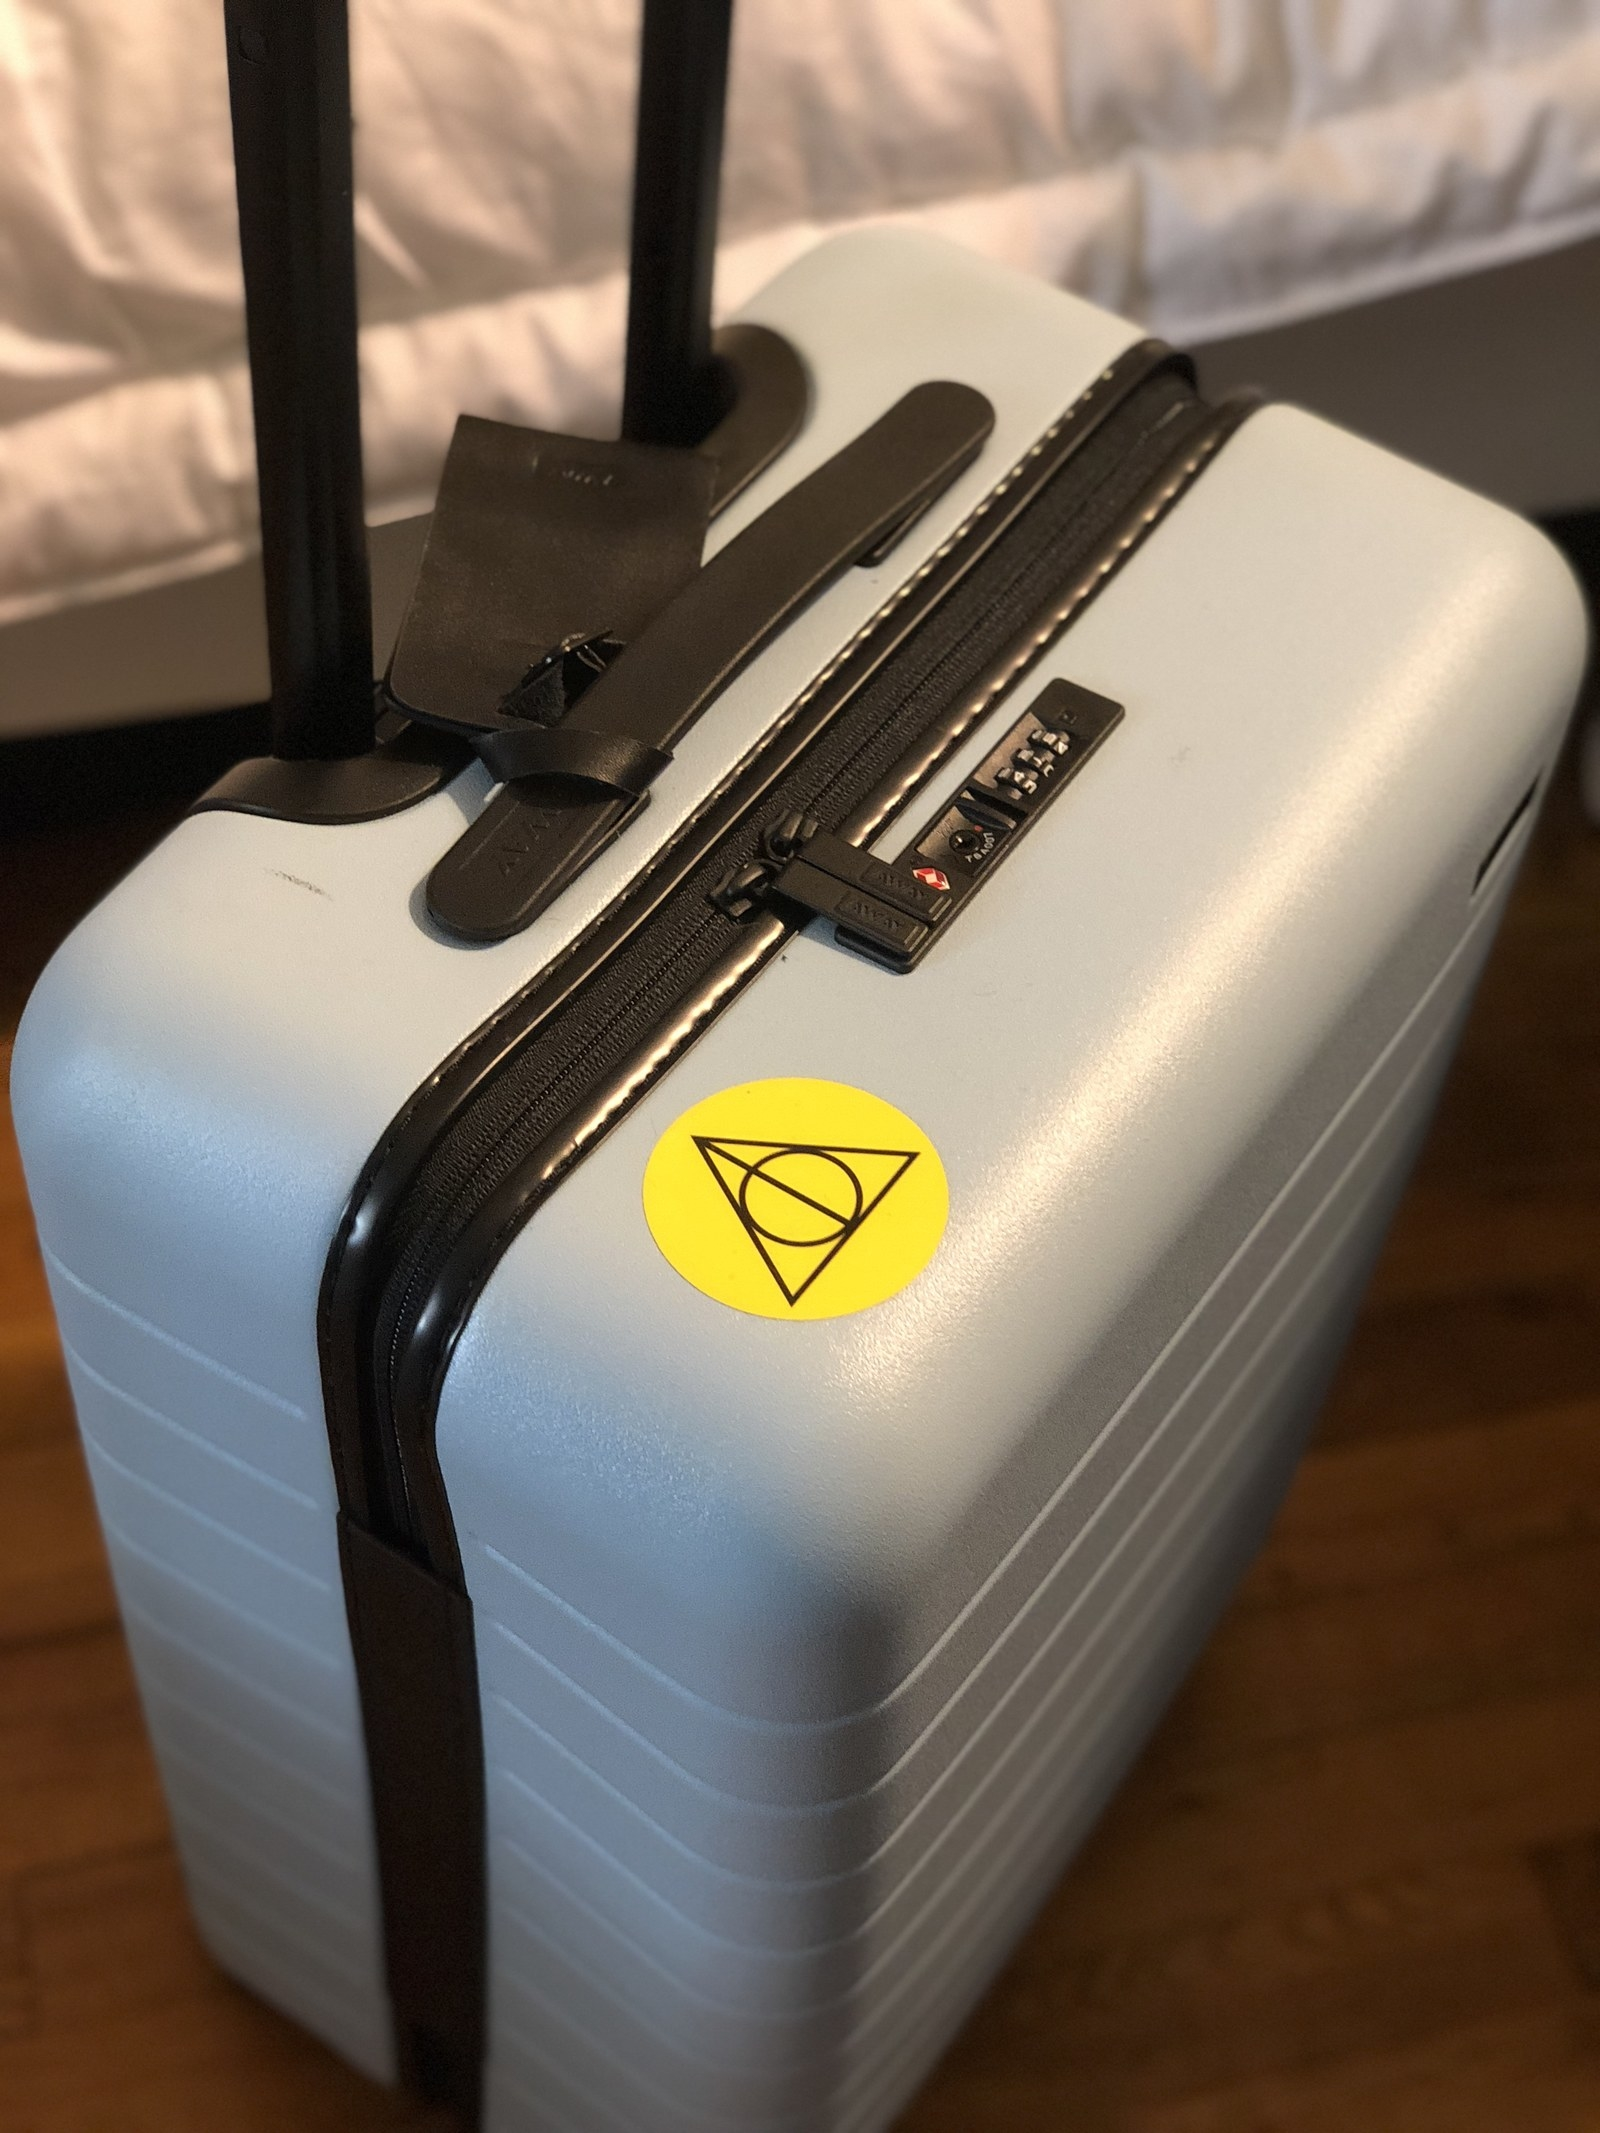 I Tried That Away Luggage All Over Instagram And Here's What Happened